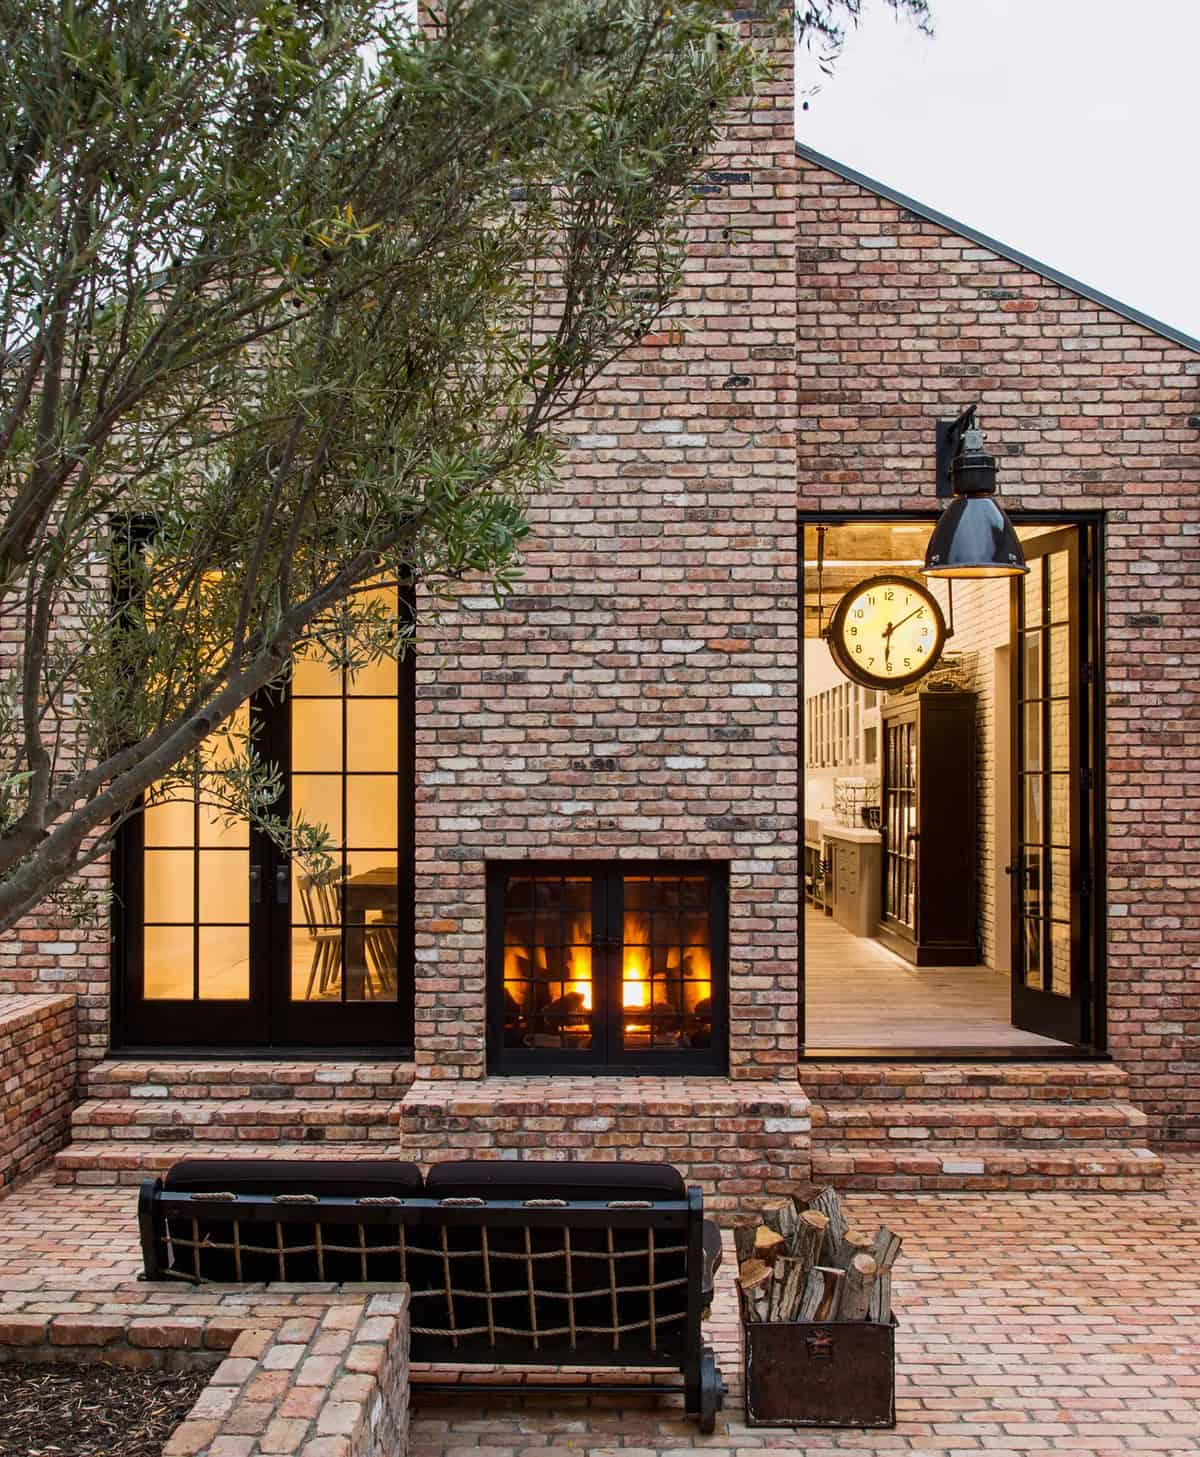 outdoor-patio-with-a-fireplace-on-a-brick-home-exterior